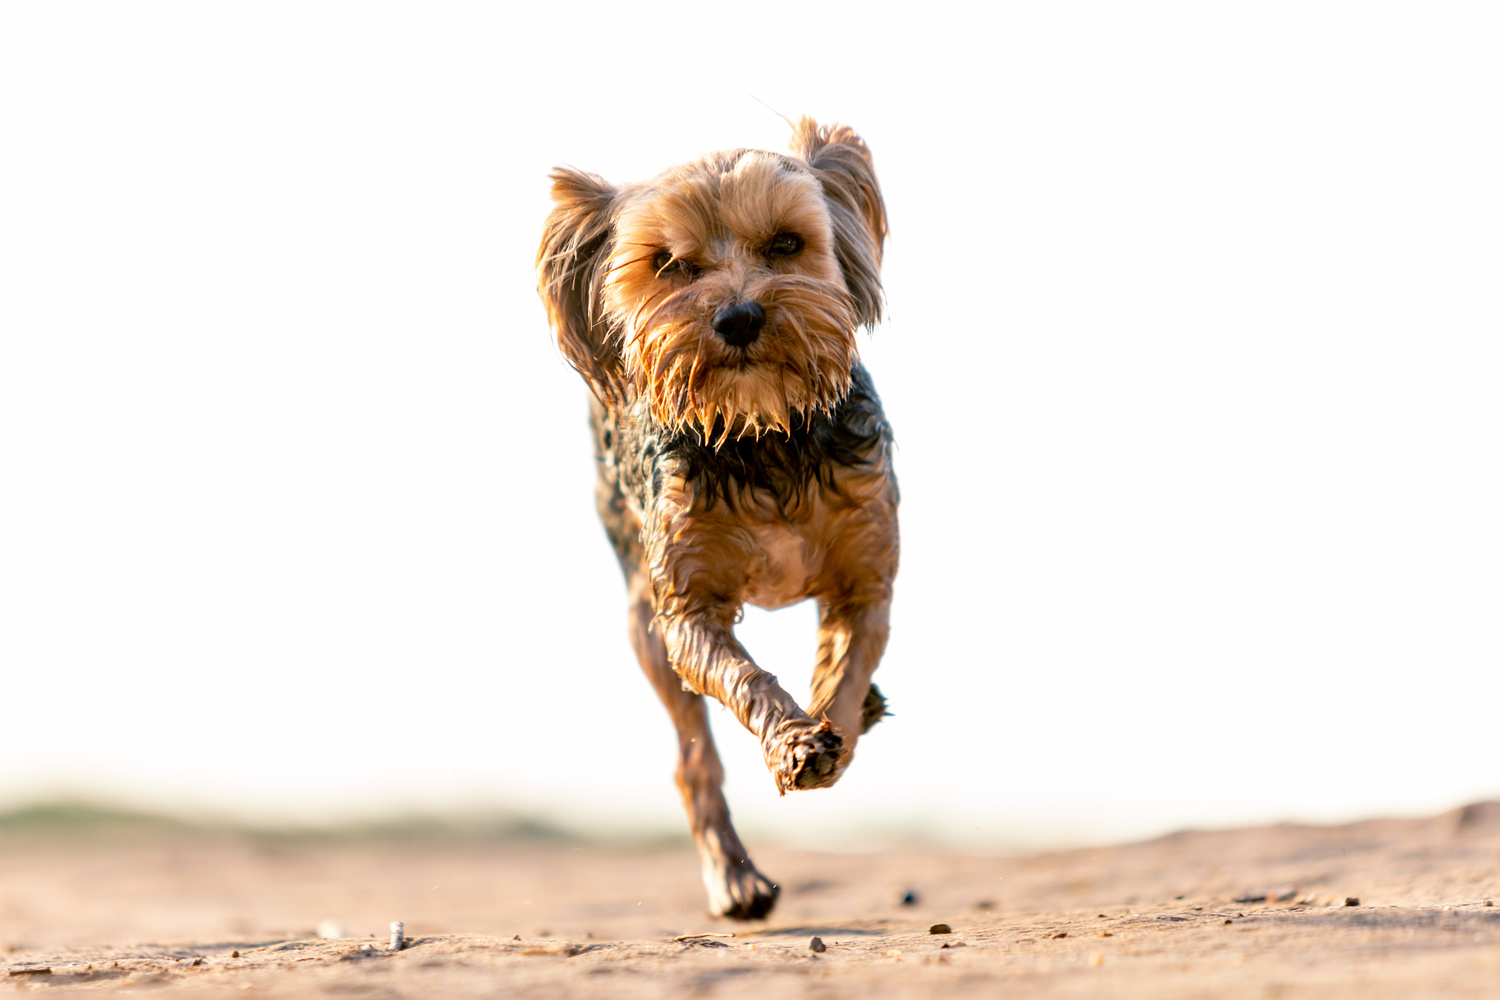 Small Yorkshire Terrier running towards the camera. Shot at a low angle.